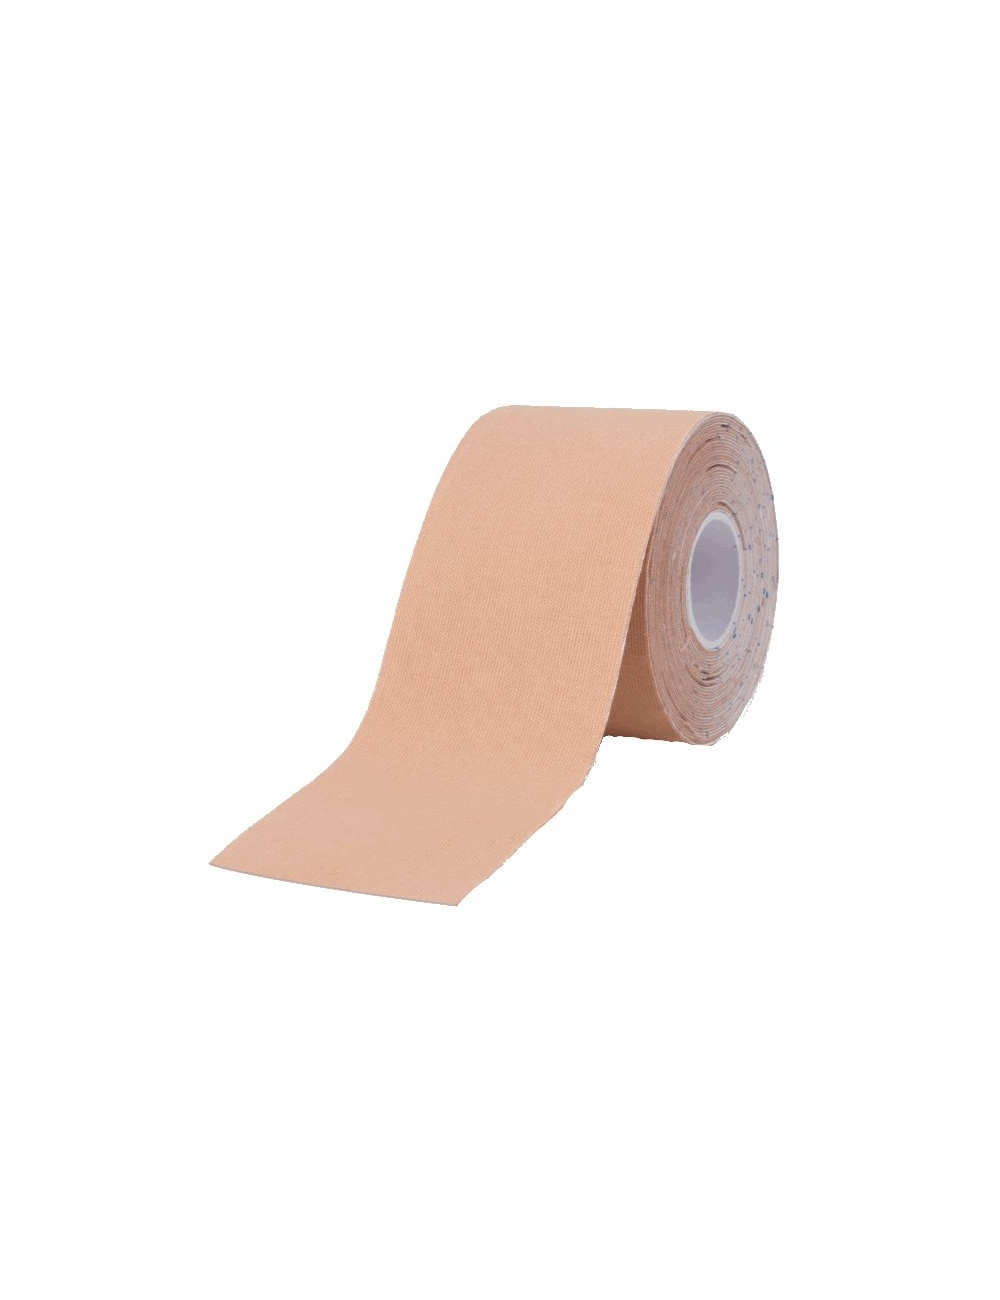 StrengthTape by LifeStrength - Uncut Single Rolls - Beige